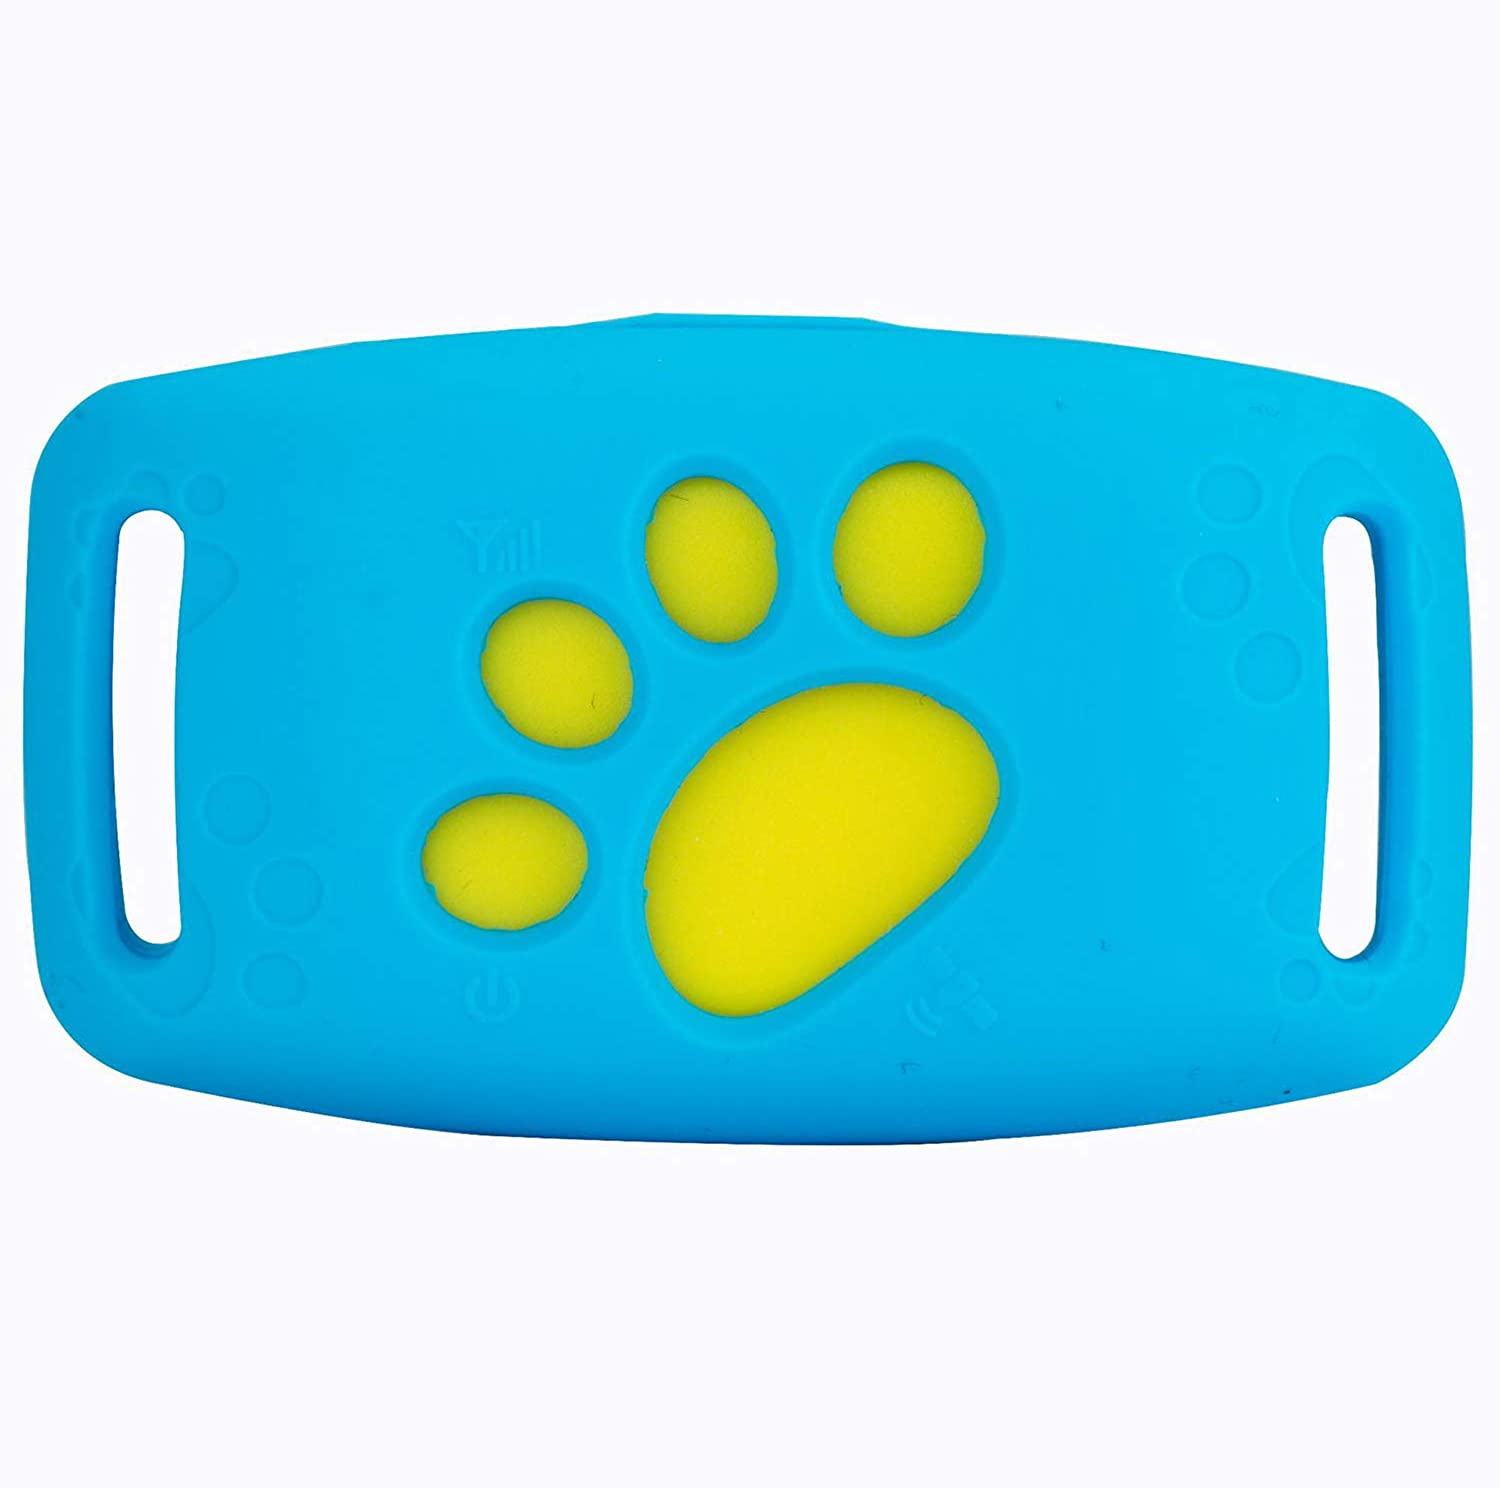 Dog GPS Tracker, Rechargeable, Safety Fence, Smart blueetooth, Remote Listening, Callback, Free Monthly Fee, Help Find And Keep Dog Cat Safe,bluee